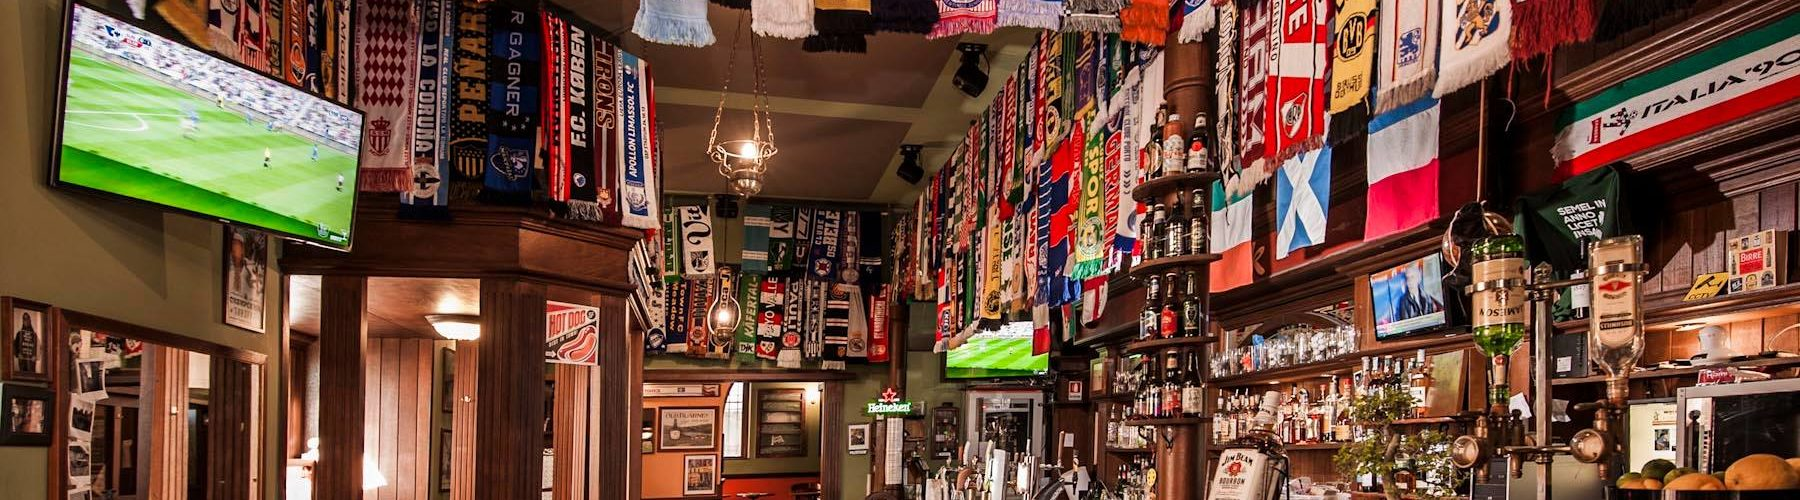 pubs showing football